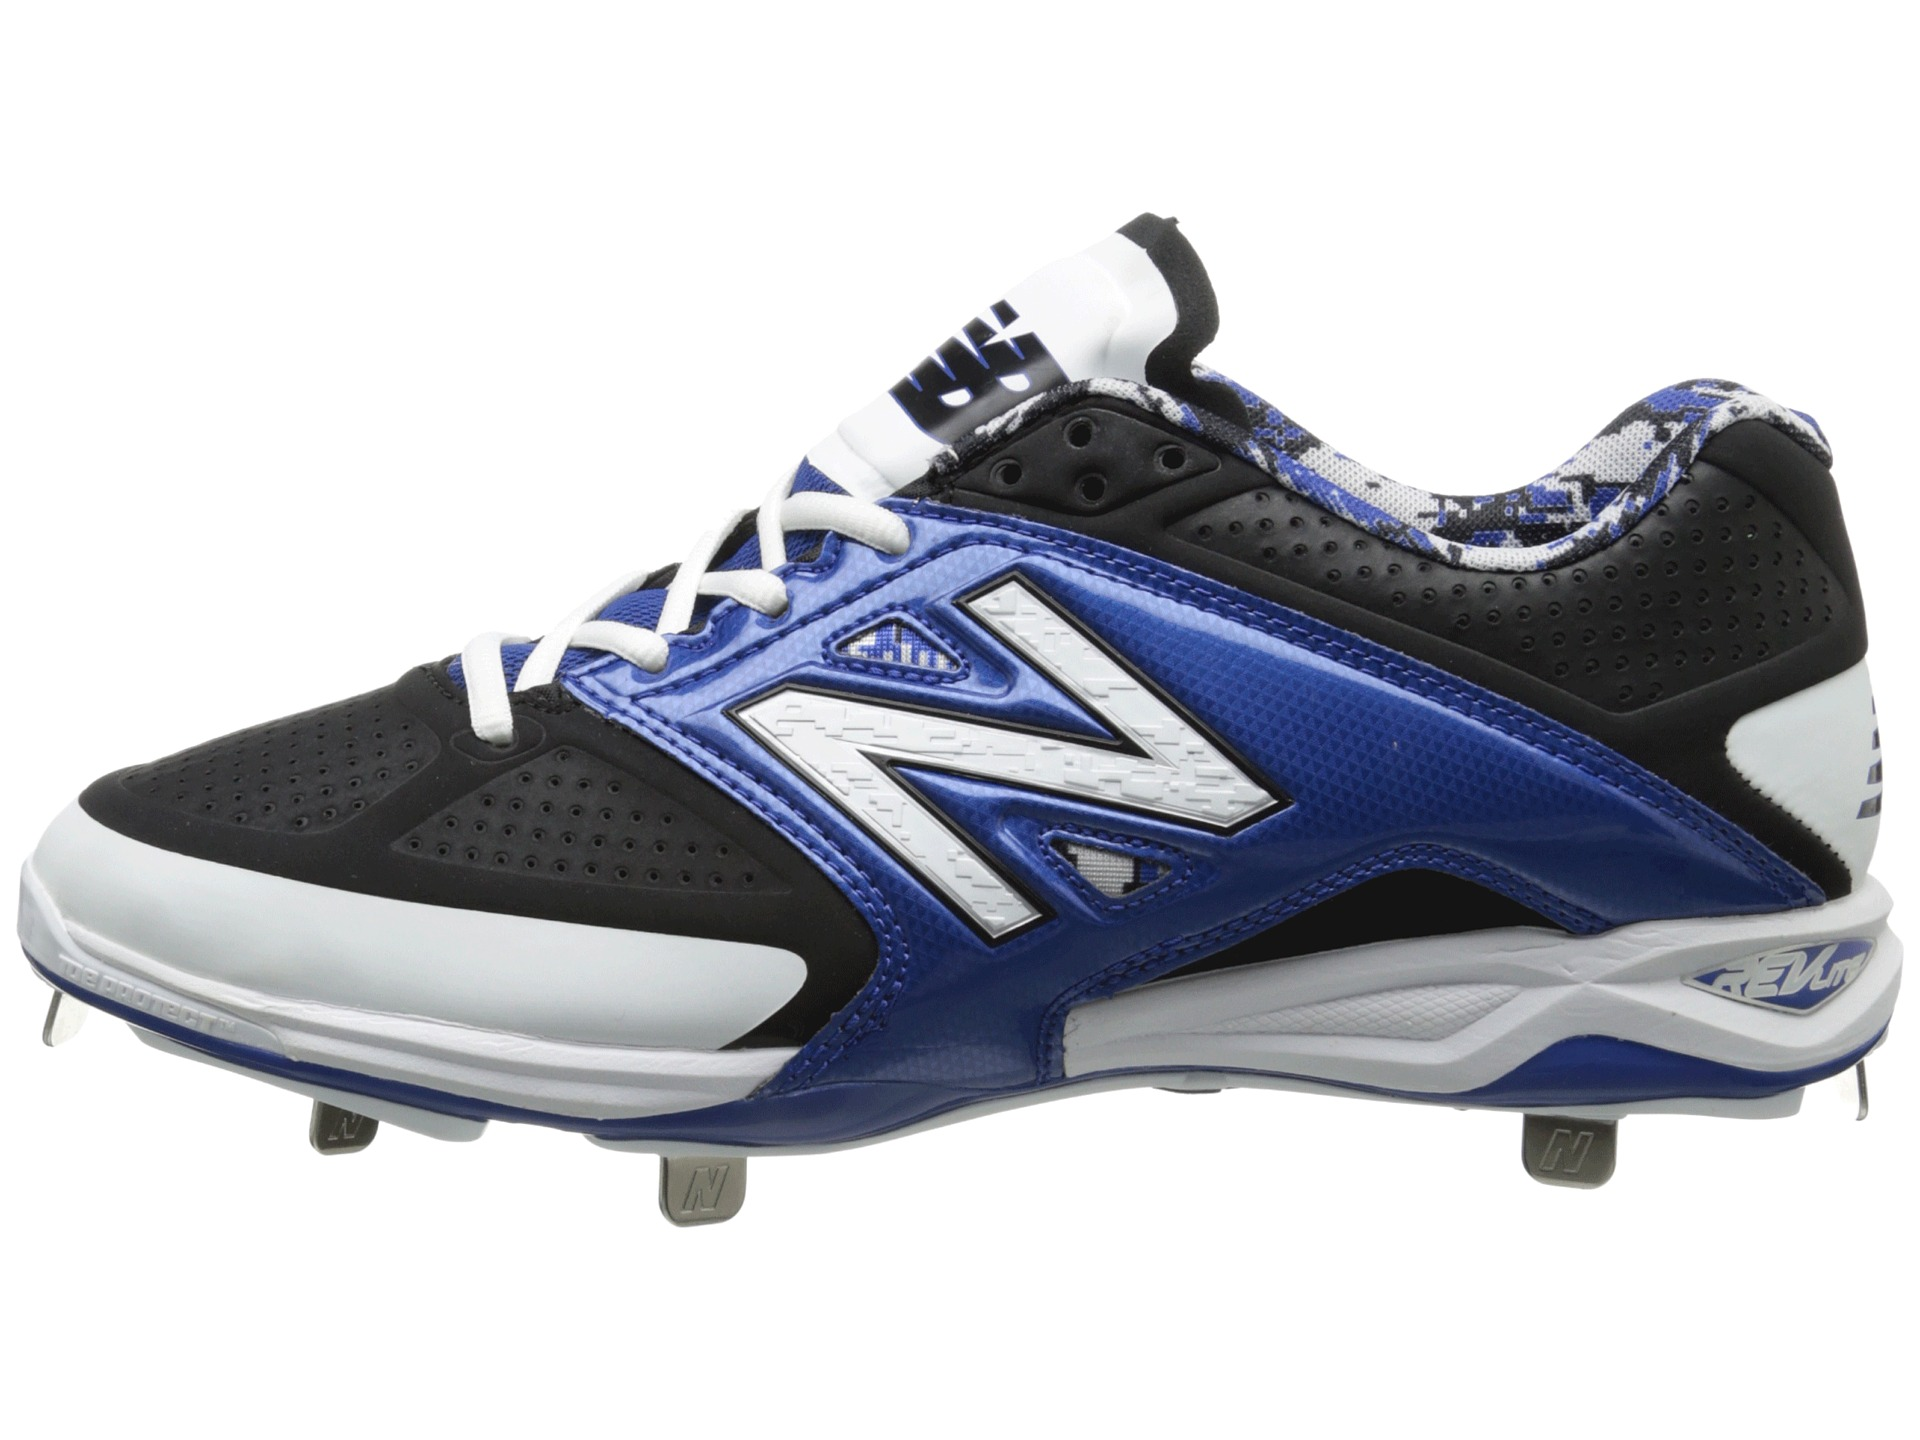 Originally purchased because I am loyal and happy with the New Balance (NB) brand in general and their line of & running shoes in particular, so thought I would try their cleats.